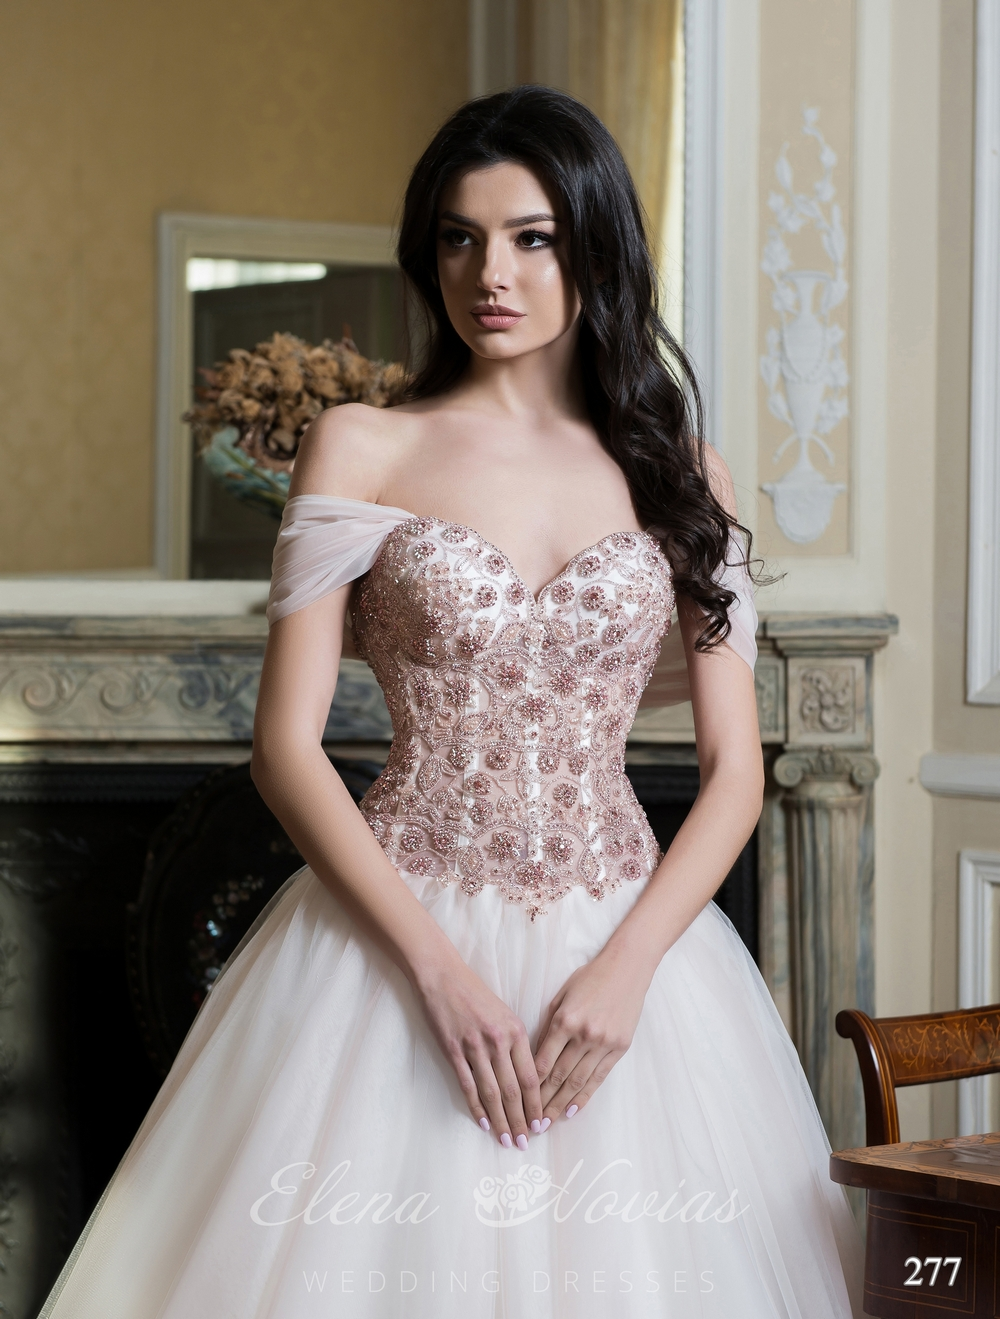 Wedding dress wholesale 277